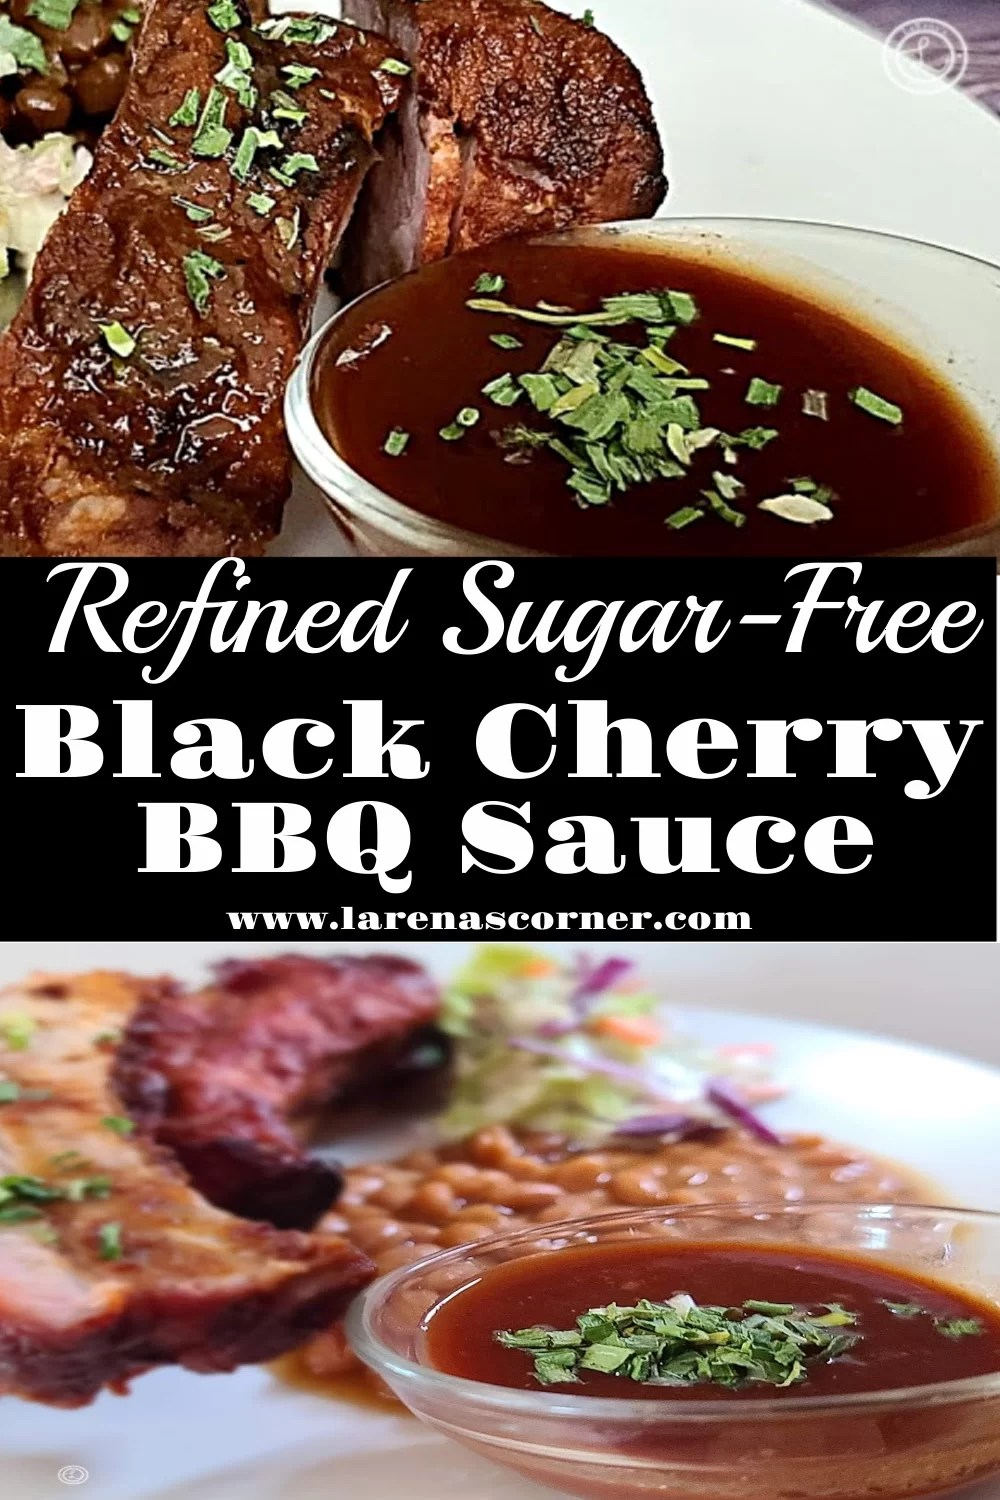 Two pictures with Black Cherry BBQ Sauce.